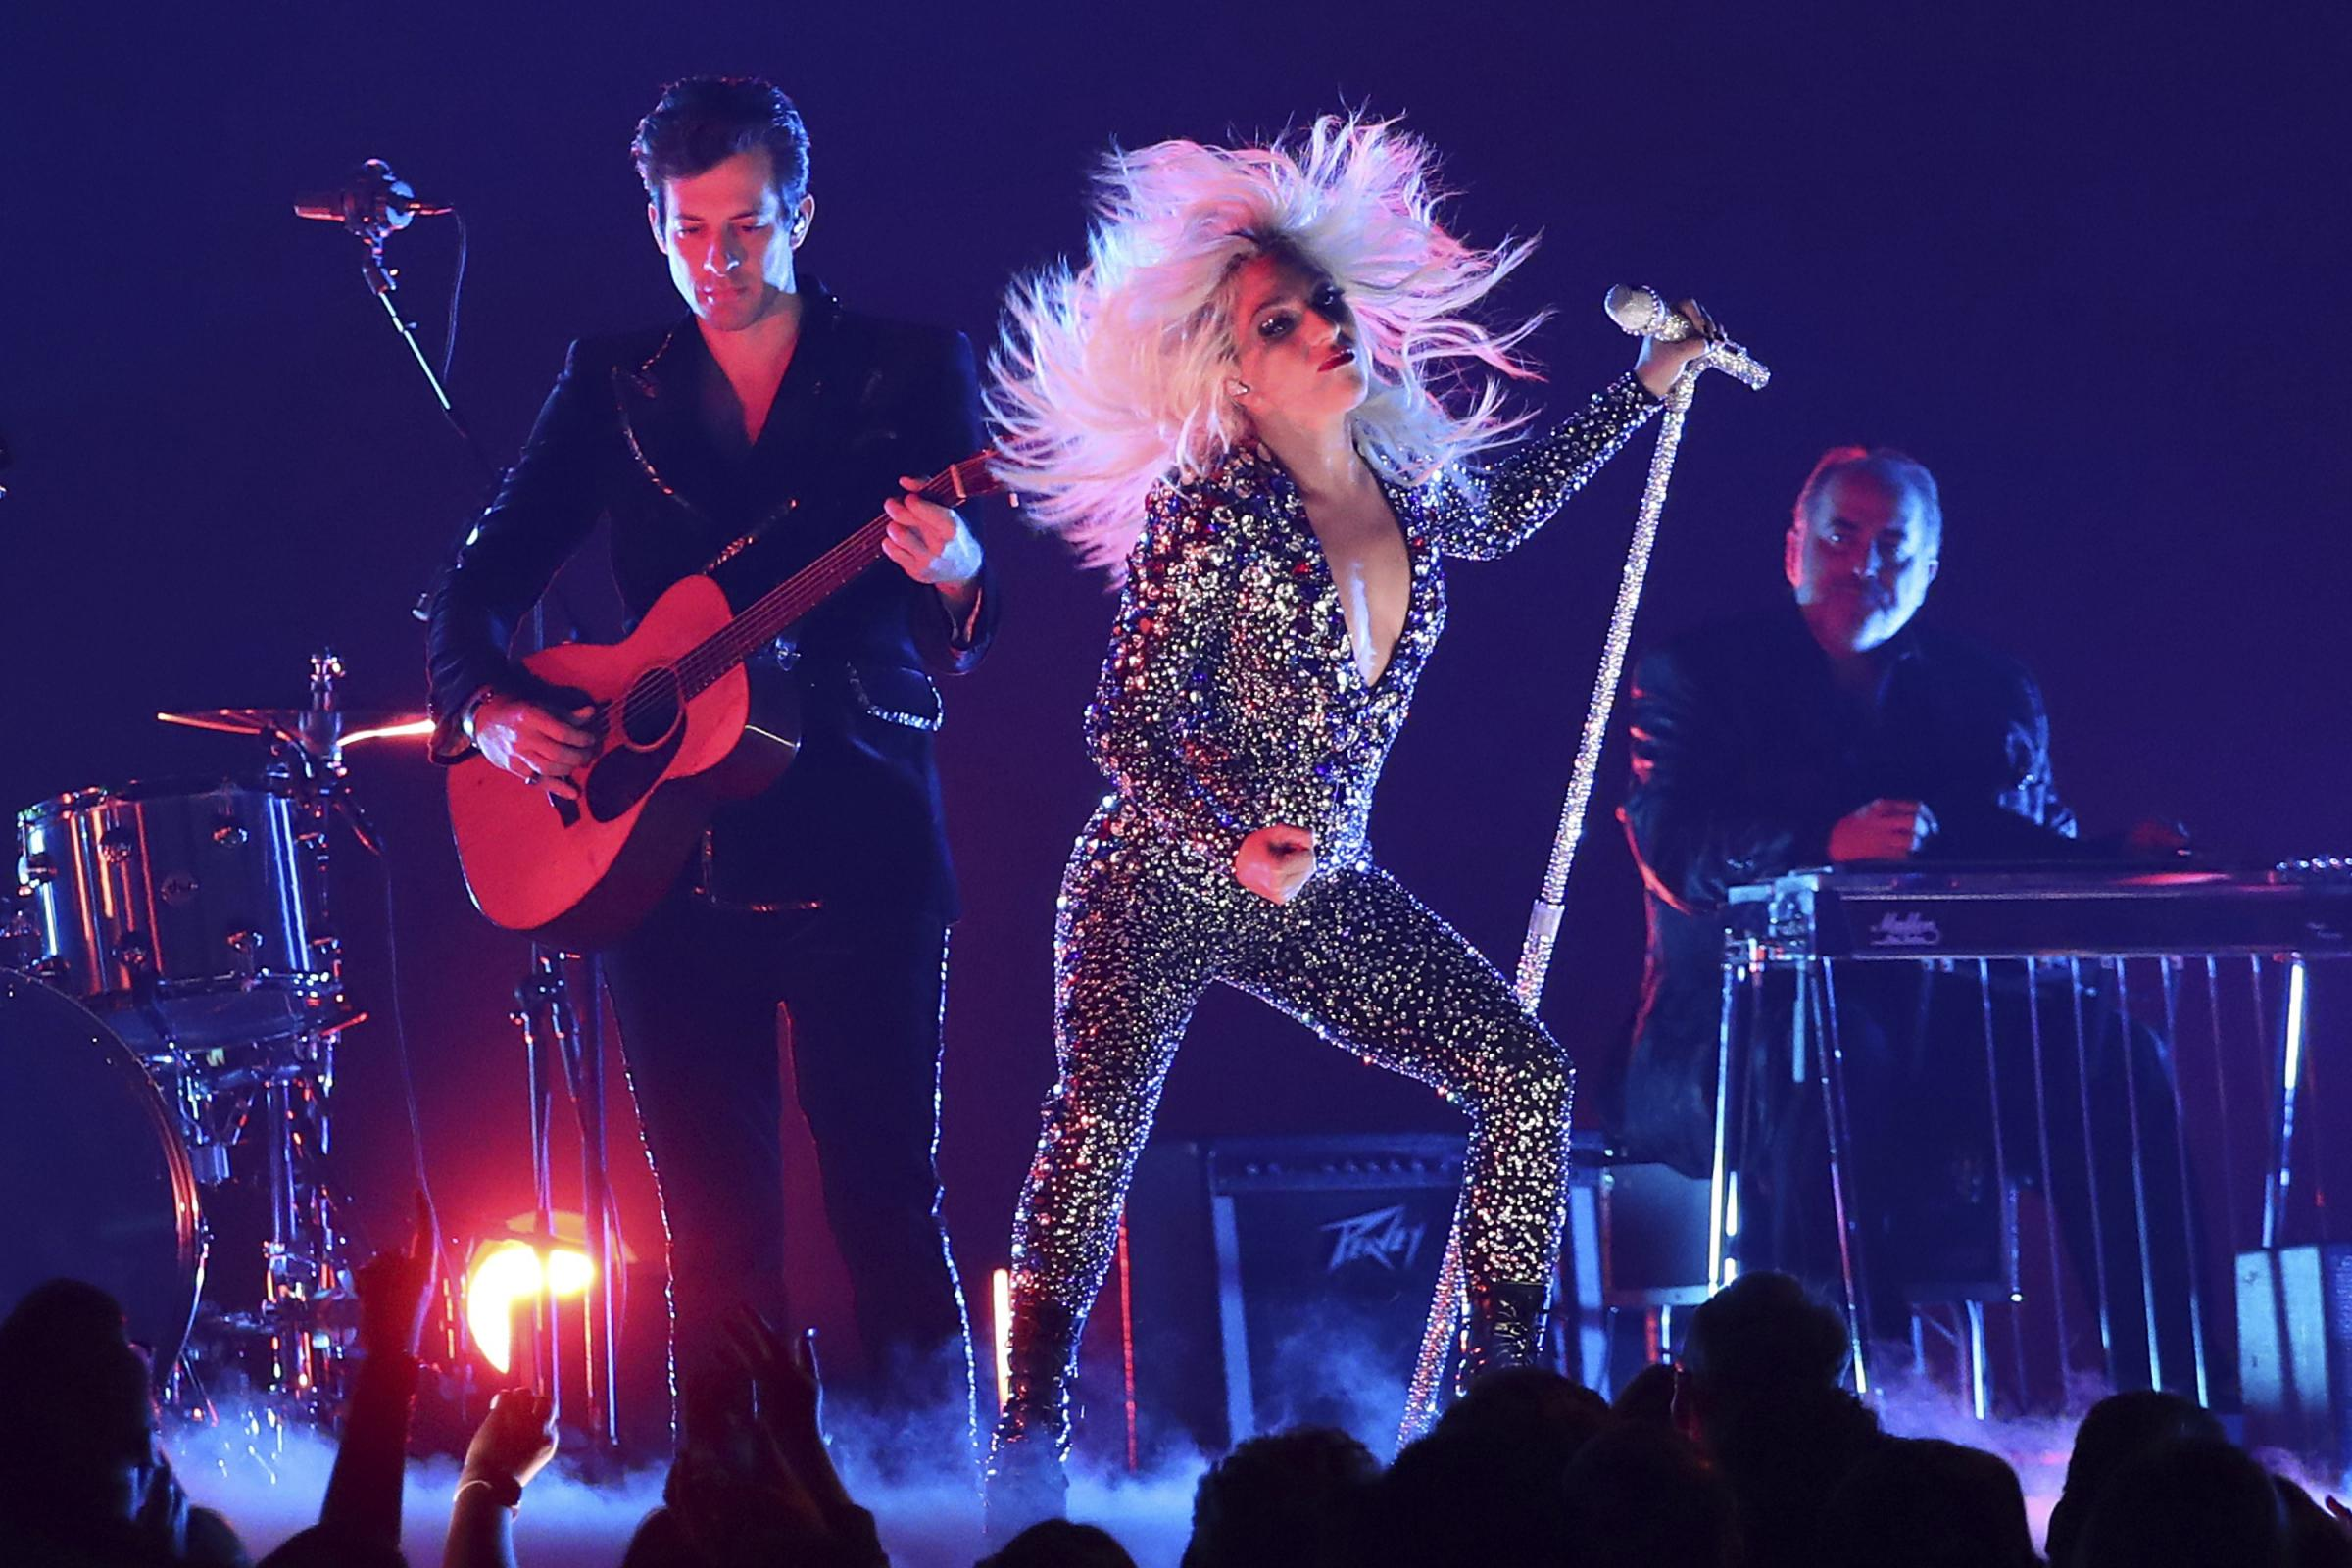 Lady Gaga performs Shallow at the Grammys